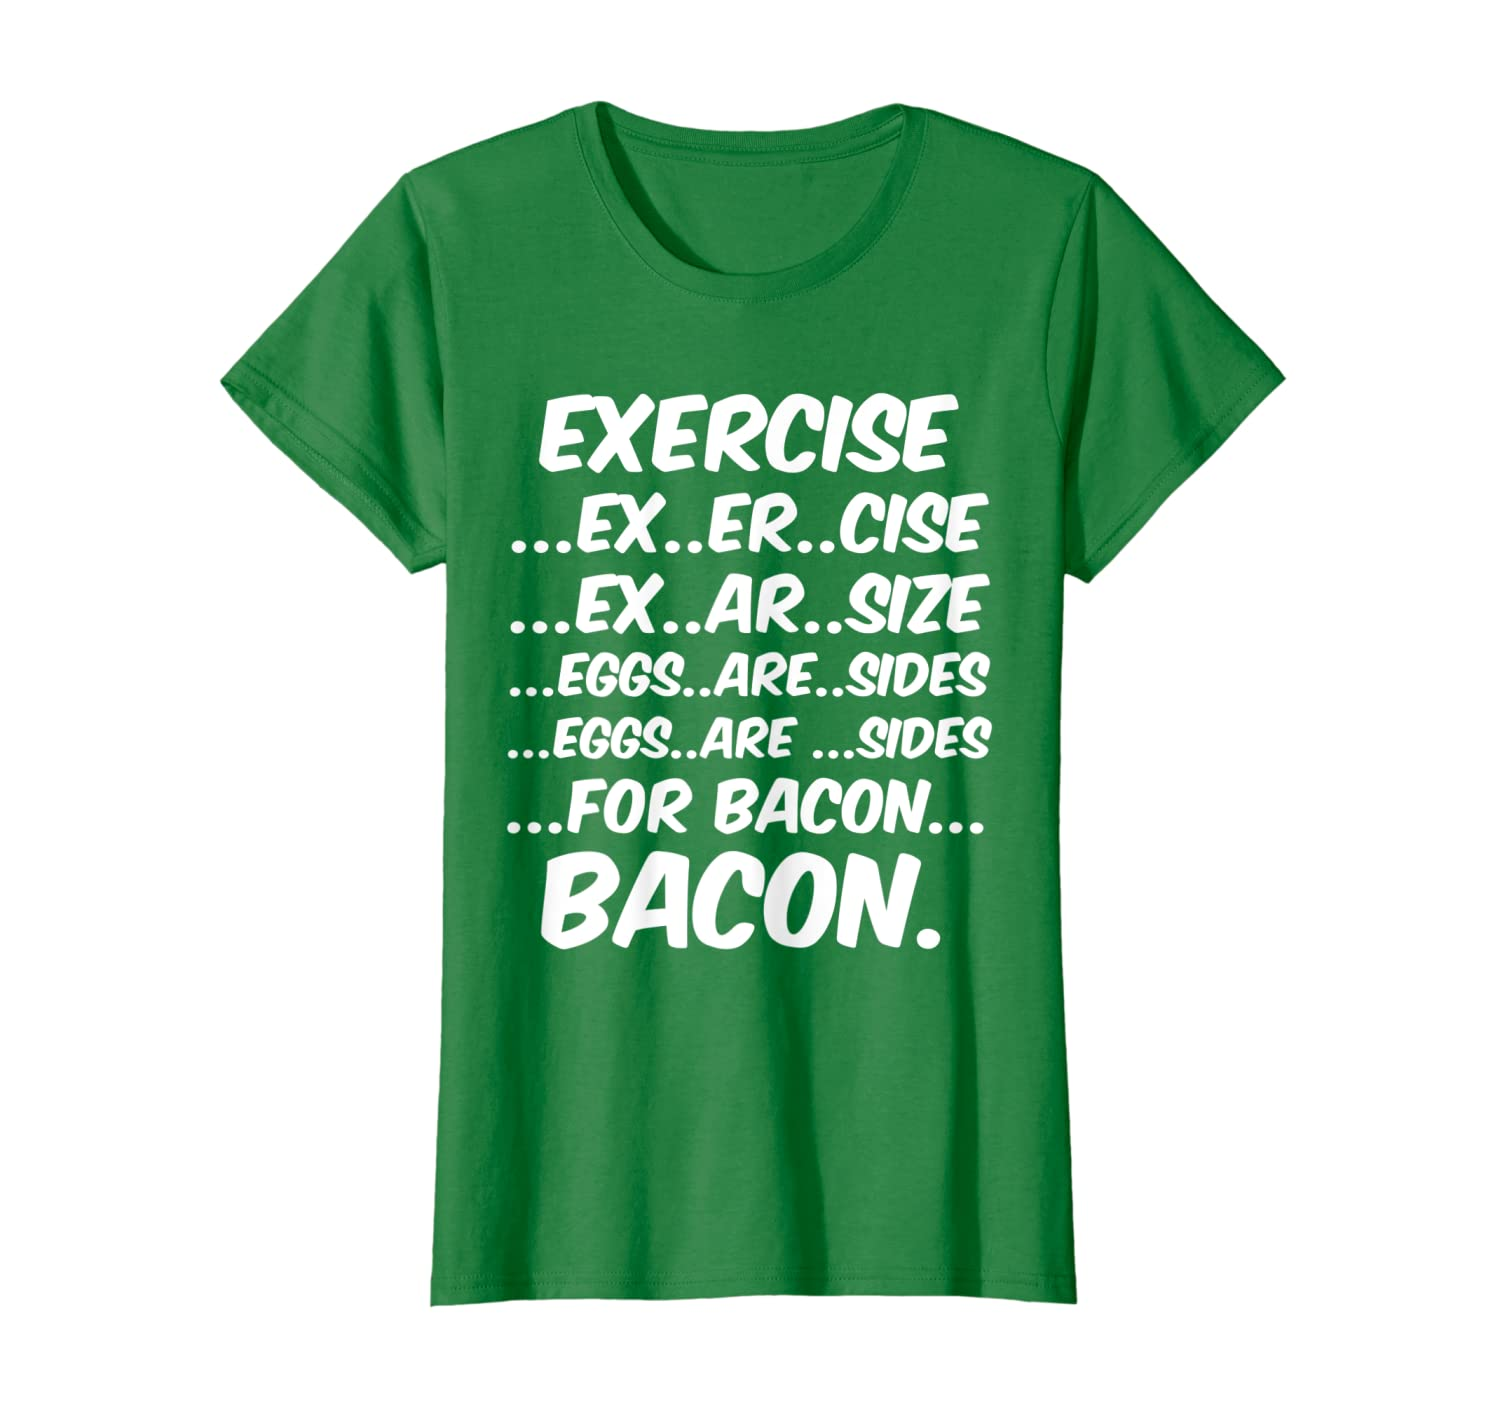 044f998a1 Amazon.com: Exercise Bacon Shirt (Exercise Eggs Are Sides For Bacon):  Clothing